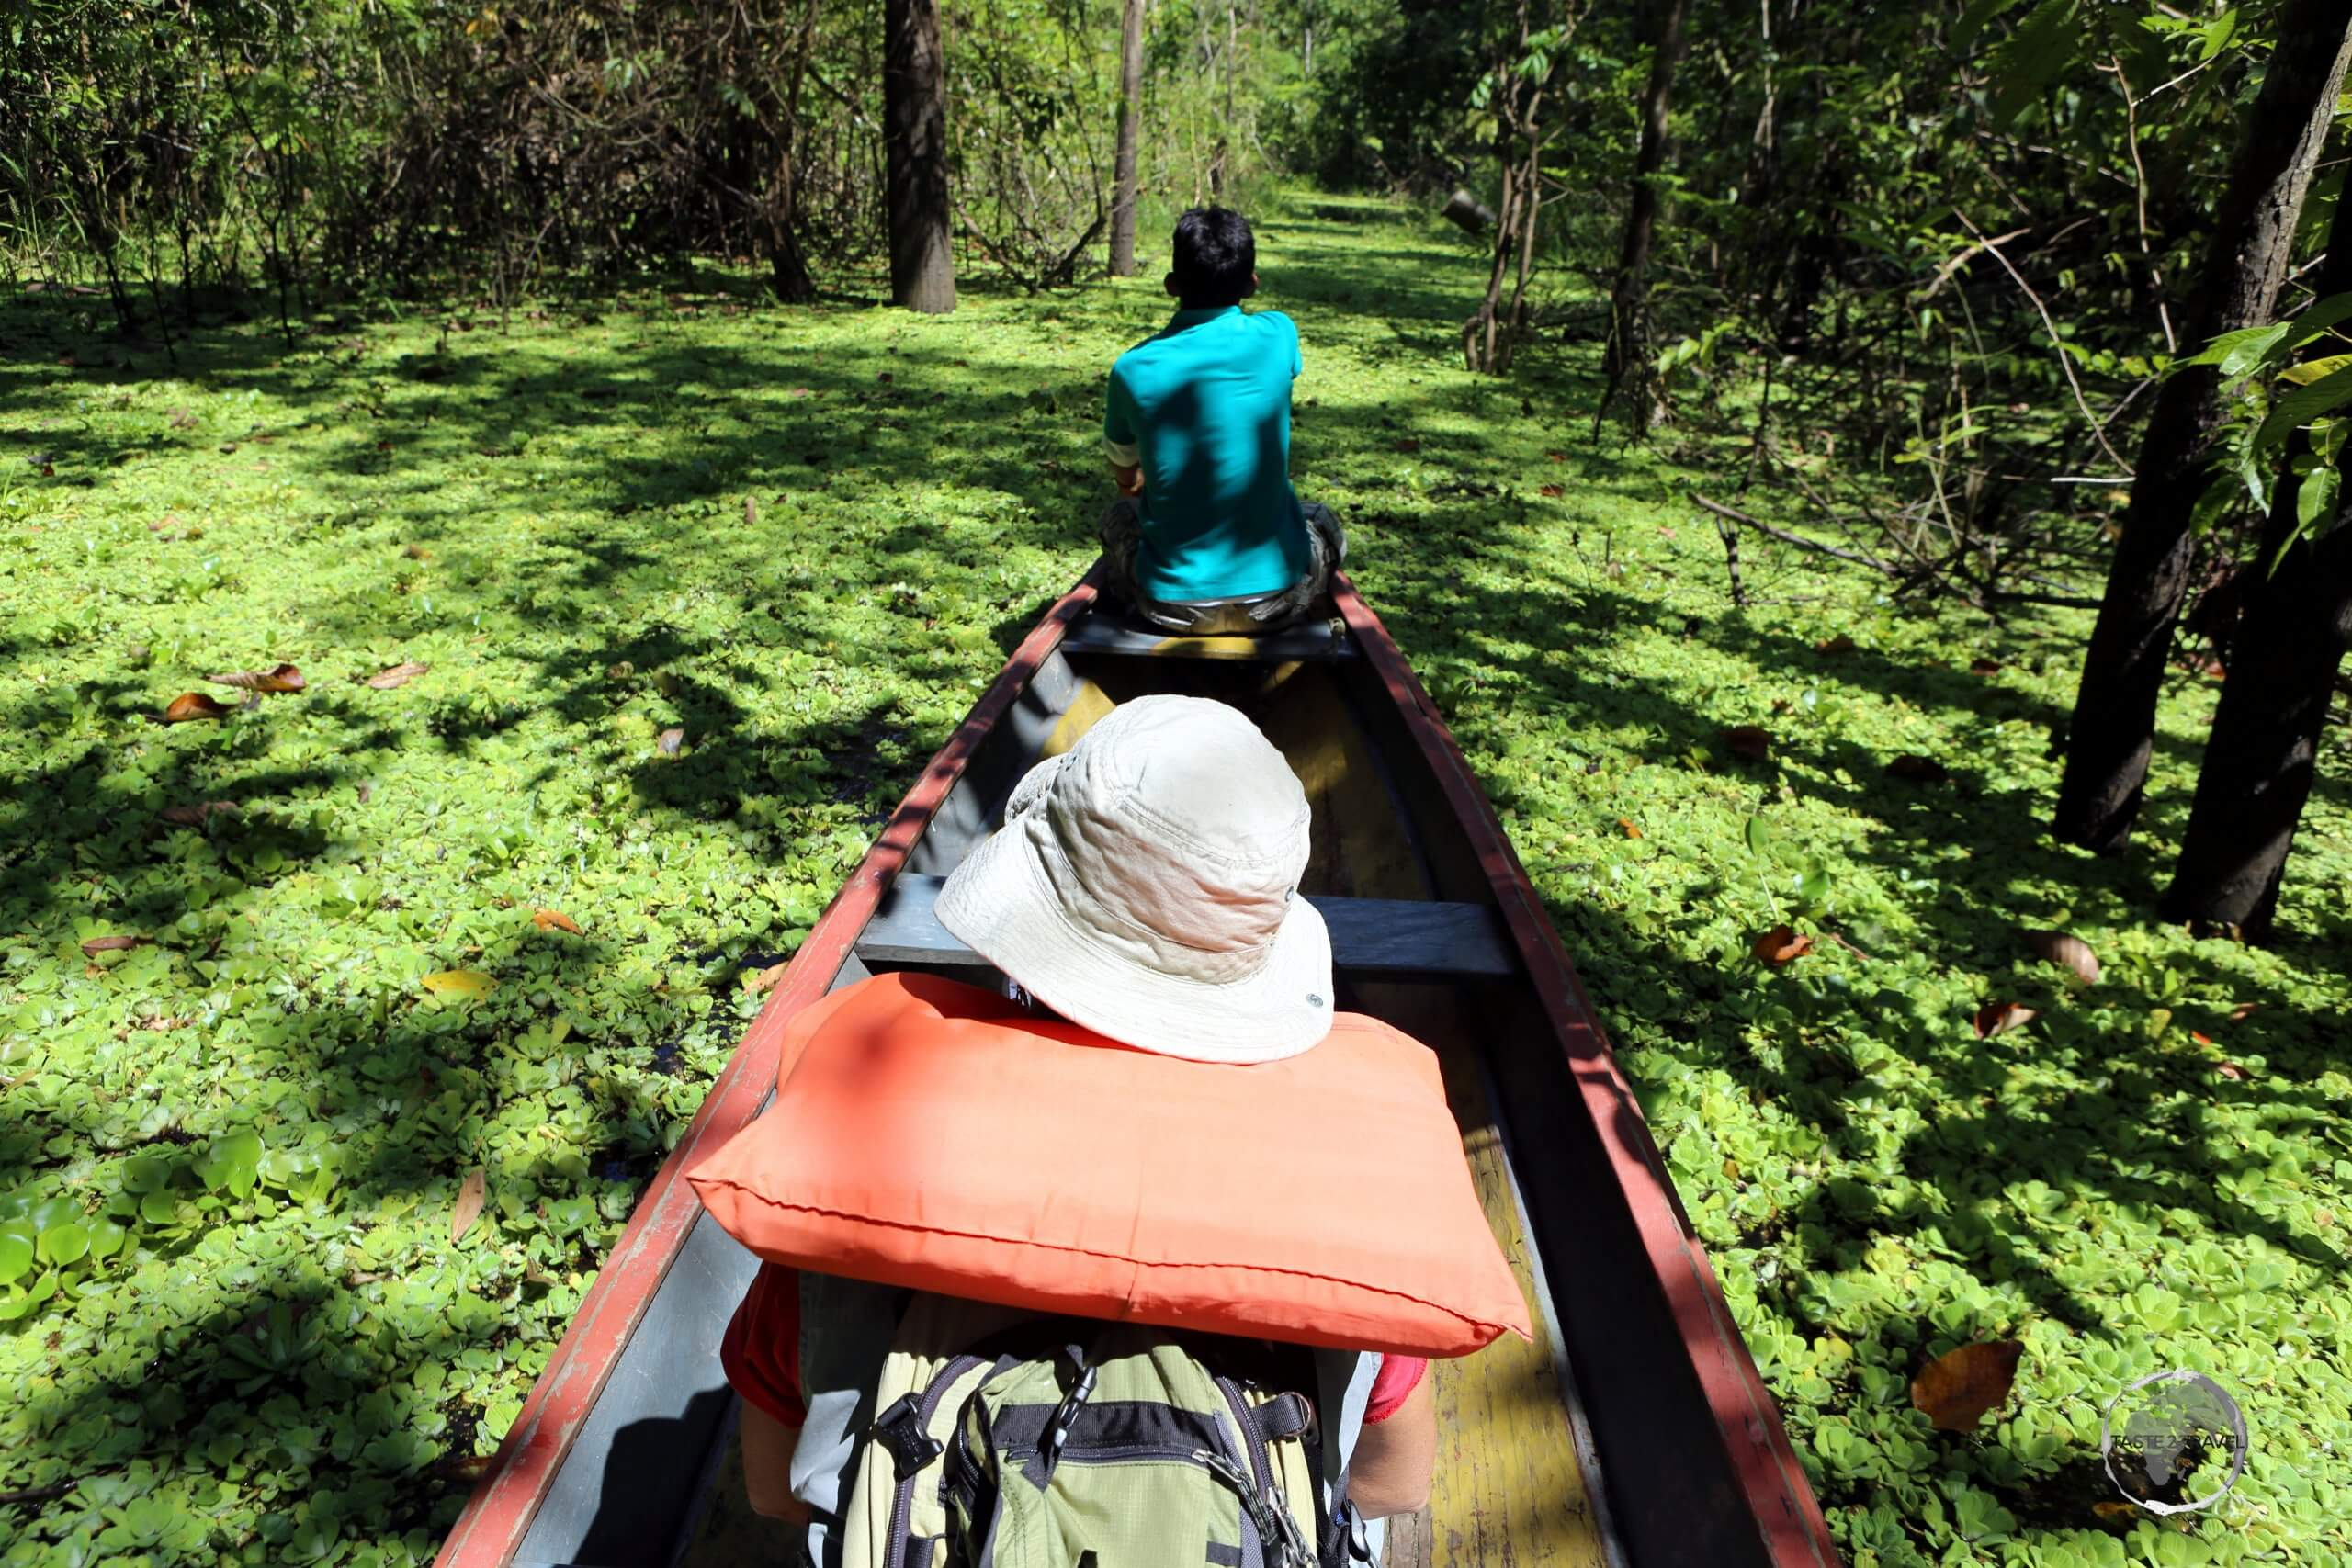 Our kayak transport, which took us from the Amazon river through a large swamp to the Marasha Nature Reserve, which is located in Peru, across the river from Colombia.